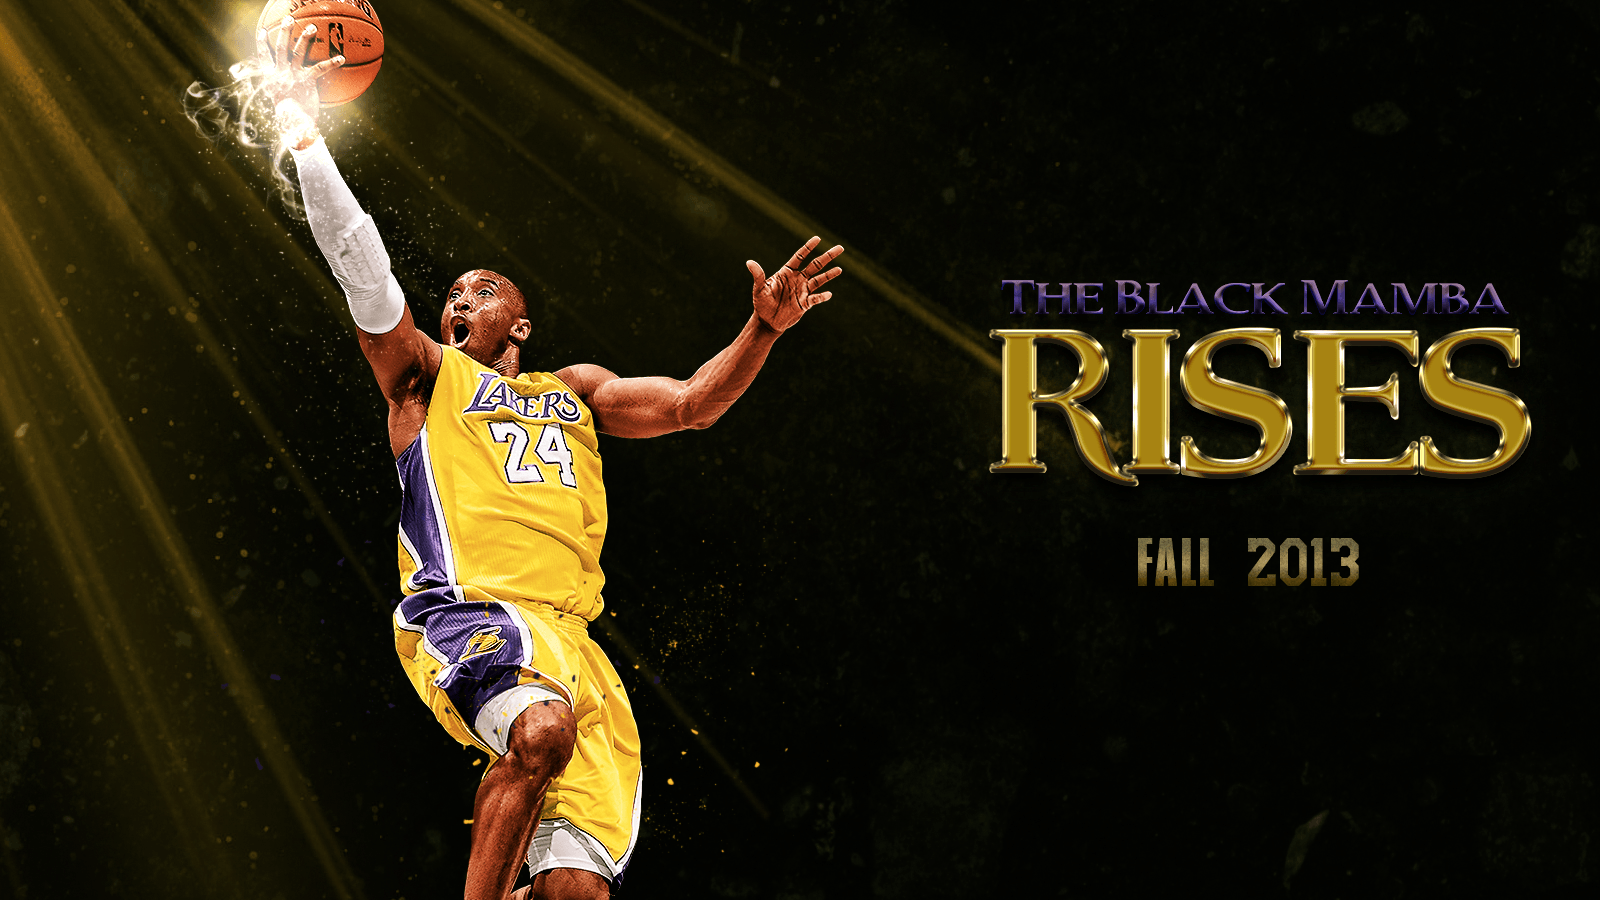 Black Mamba Rises wallpapers by chronoxiong